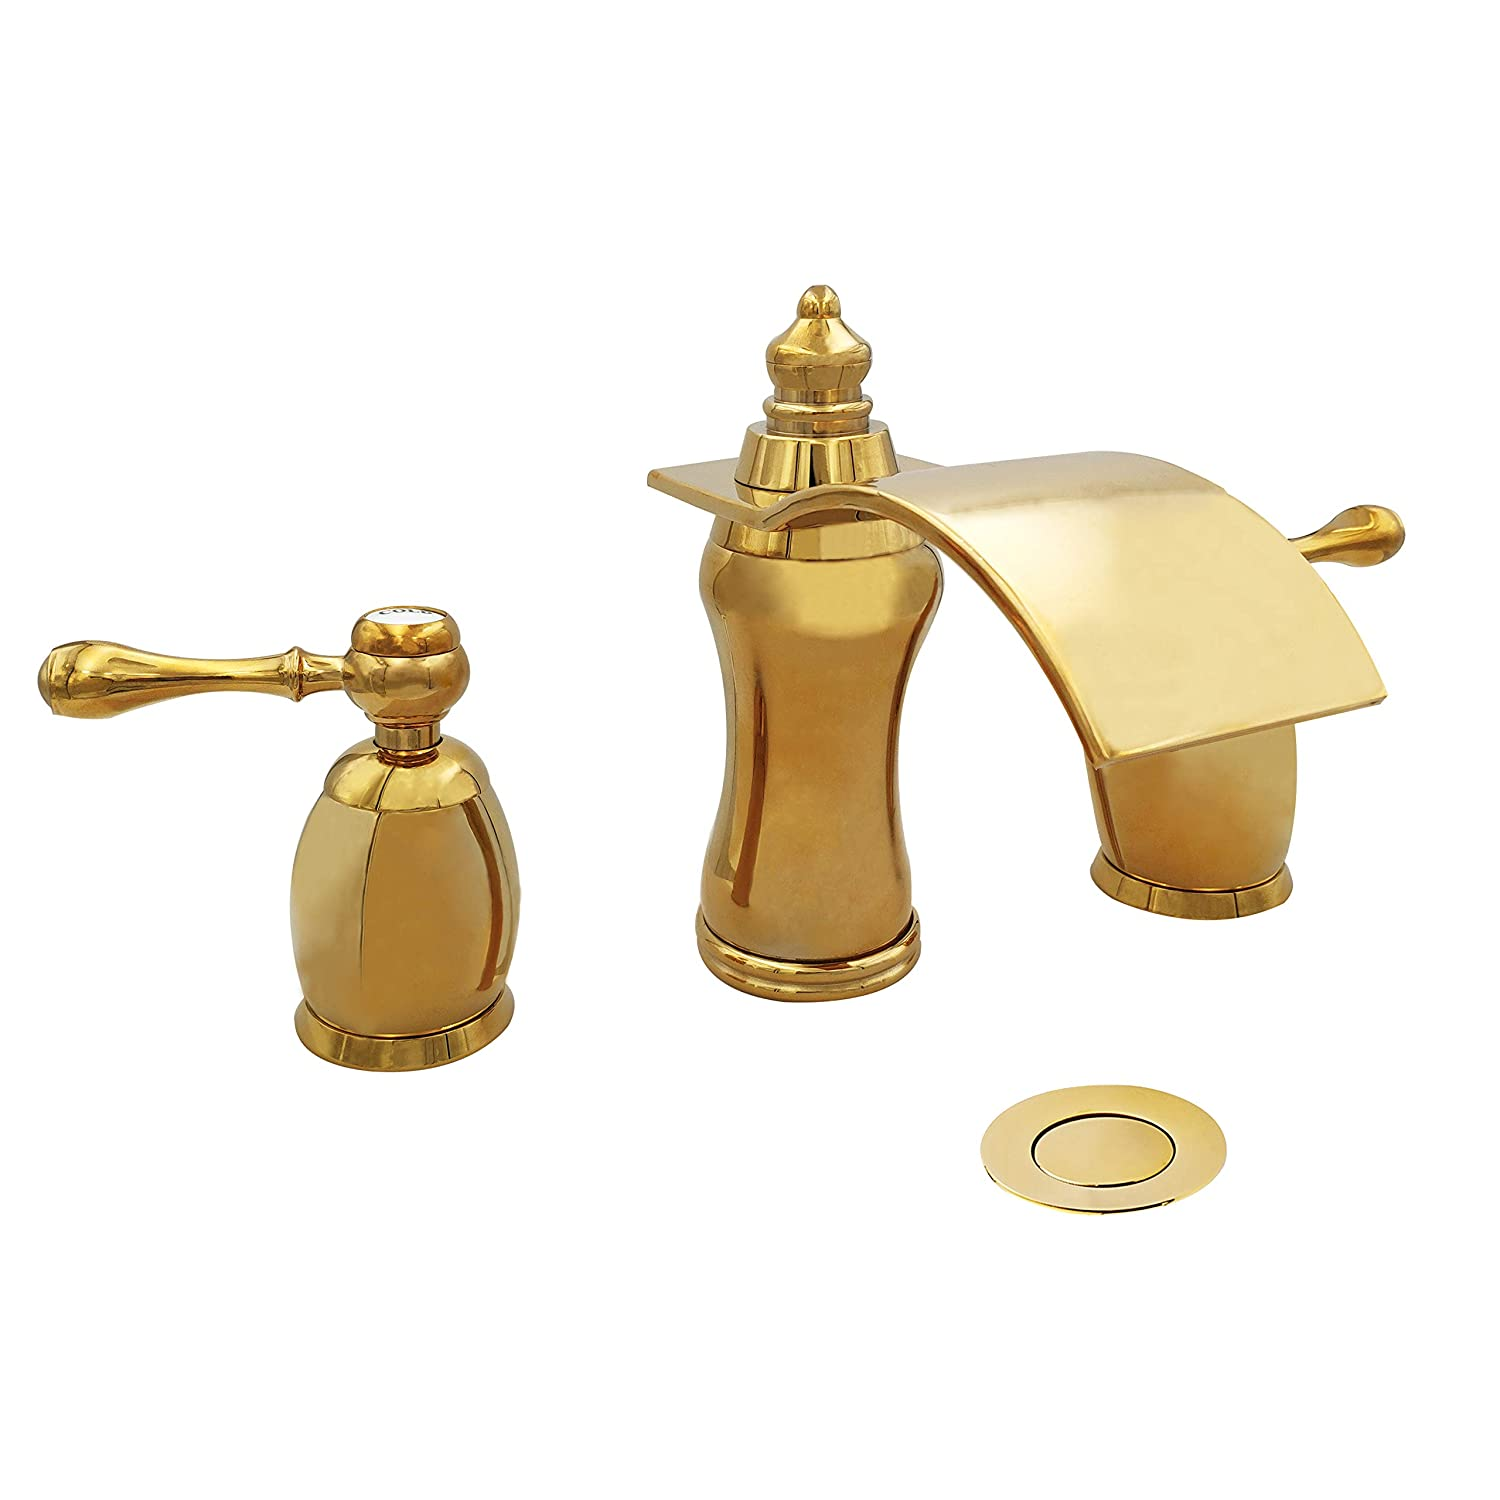 iFaucet Gold(ti-pvd) Bathroom Sink Faucet Vessel Faucet Centerset Widespread Modern Two Handle Three Hole Faucets Sprayer Lavatory Faucets